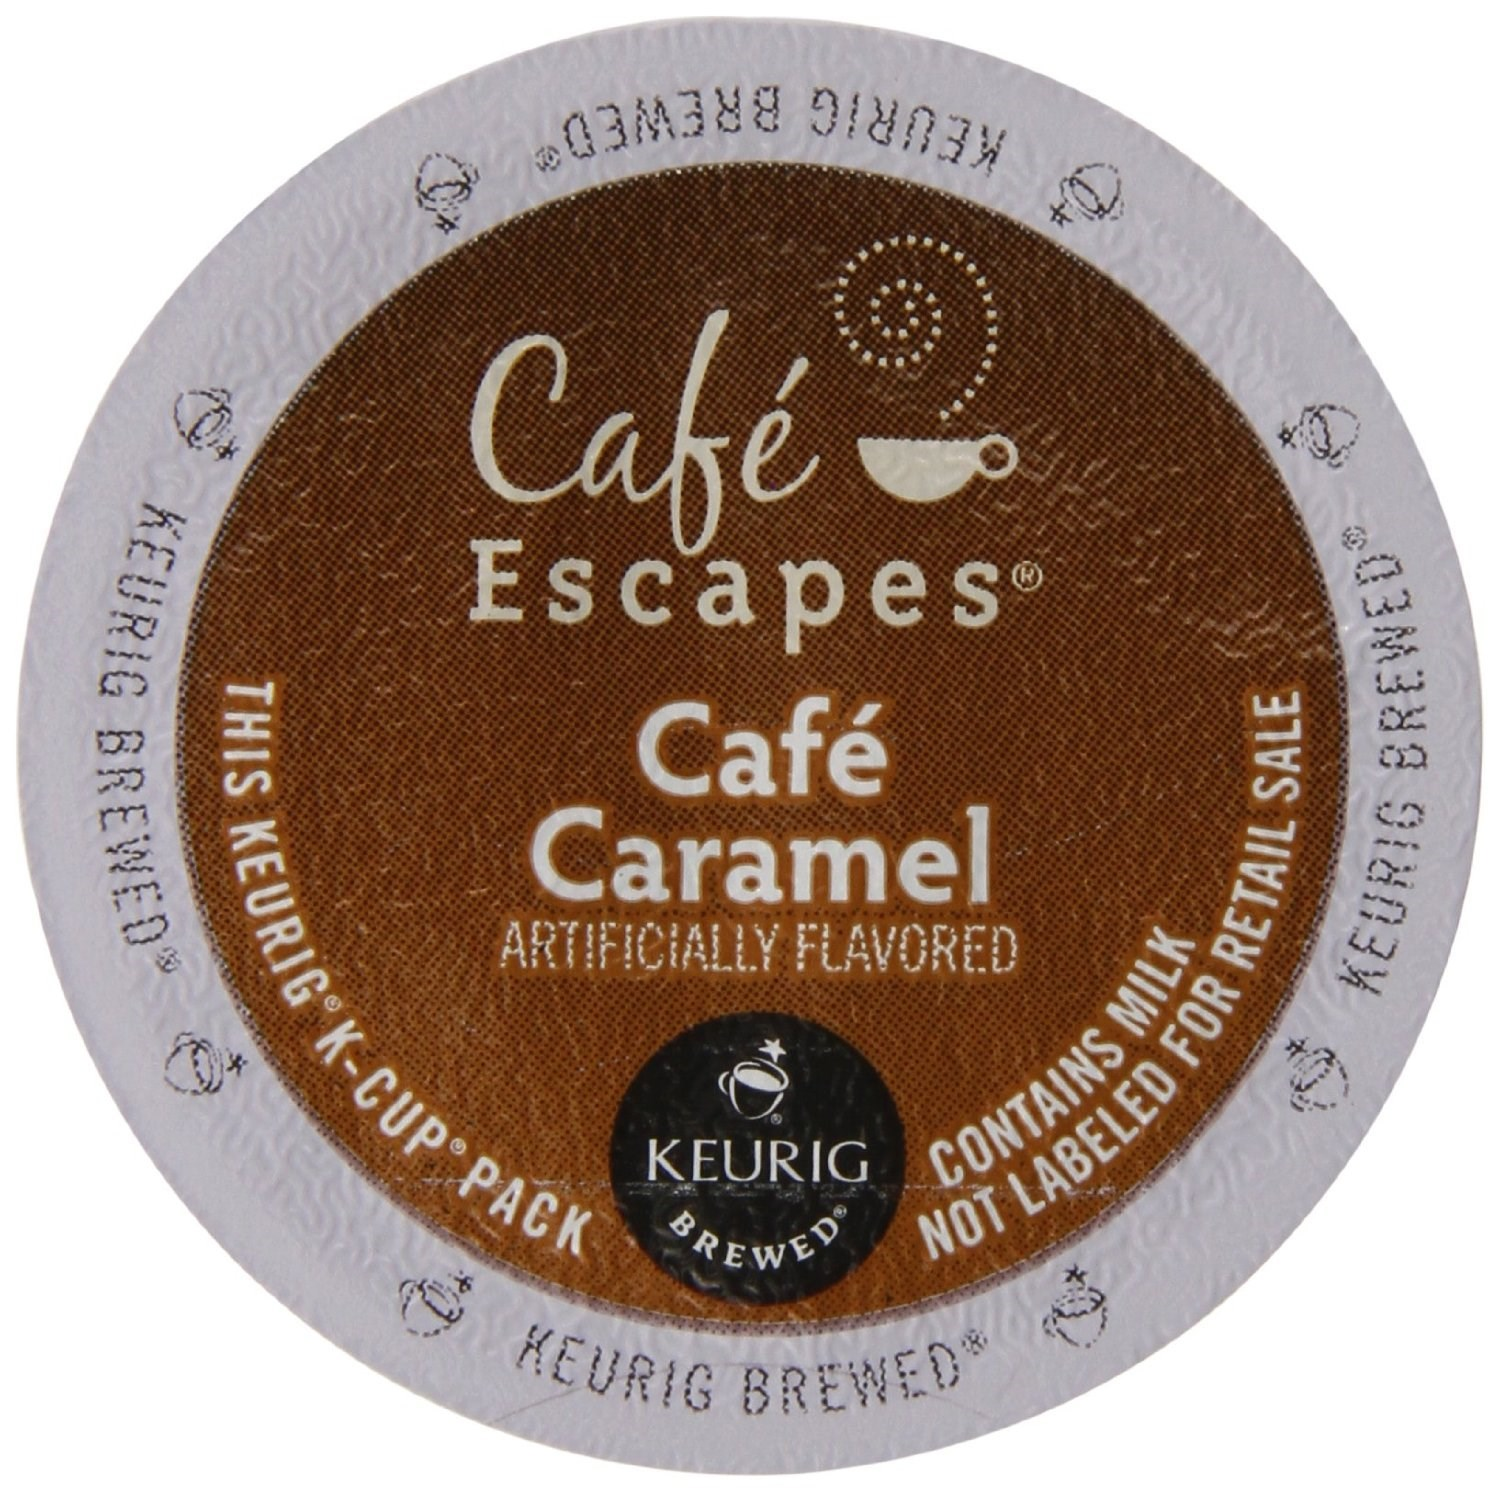 Cafe Escapes Caramel Coffee K-Cups, 12 CT (Pack of 6)